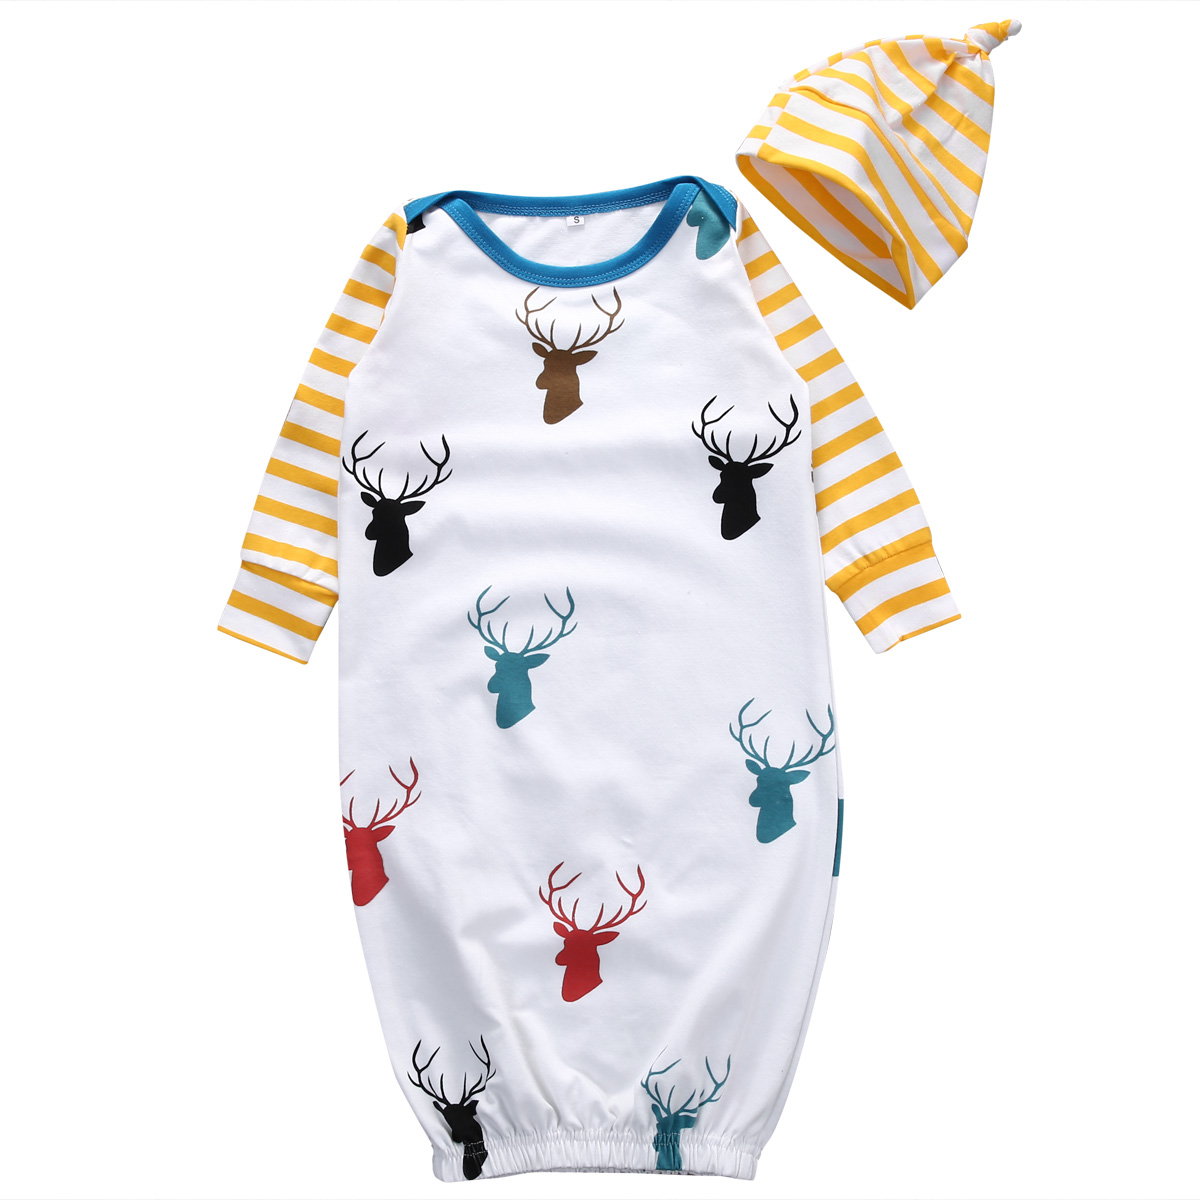 2pcs Toddler Newborn Infant Baby Girls Boy Deer Romper Striped Hat Outfits Casual Clothes Sleepwear Pjs Set puseky 2017 infant romper baby boys girls jumpsuit newborn bebe clothing hooded toddler baby clothes cute panda romper costumes